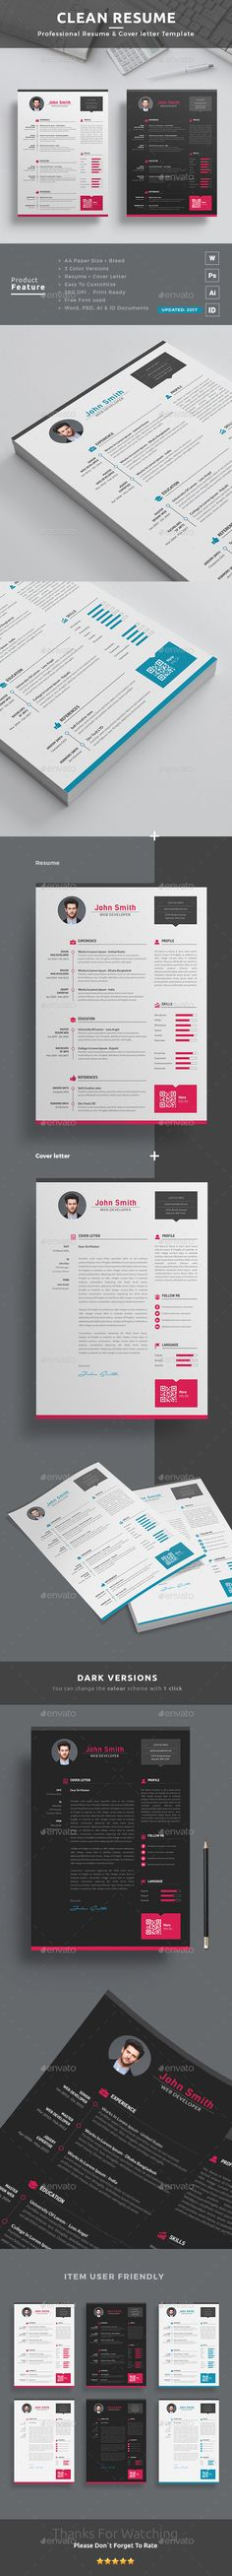 Clean Resume Download%0A Great resume layout that is well formatted and clean  For u      resume  template          CV   Pinterest   Resume layout  Resume styles and Cv resume template